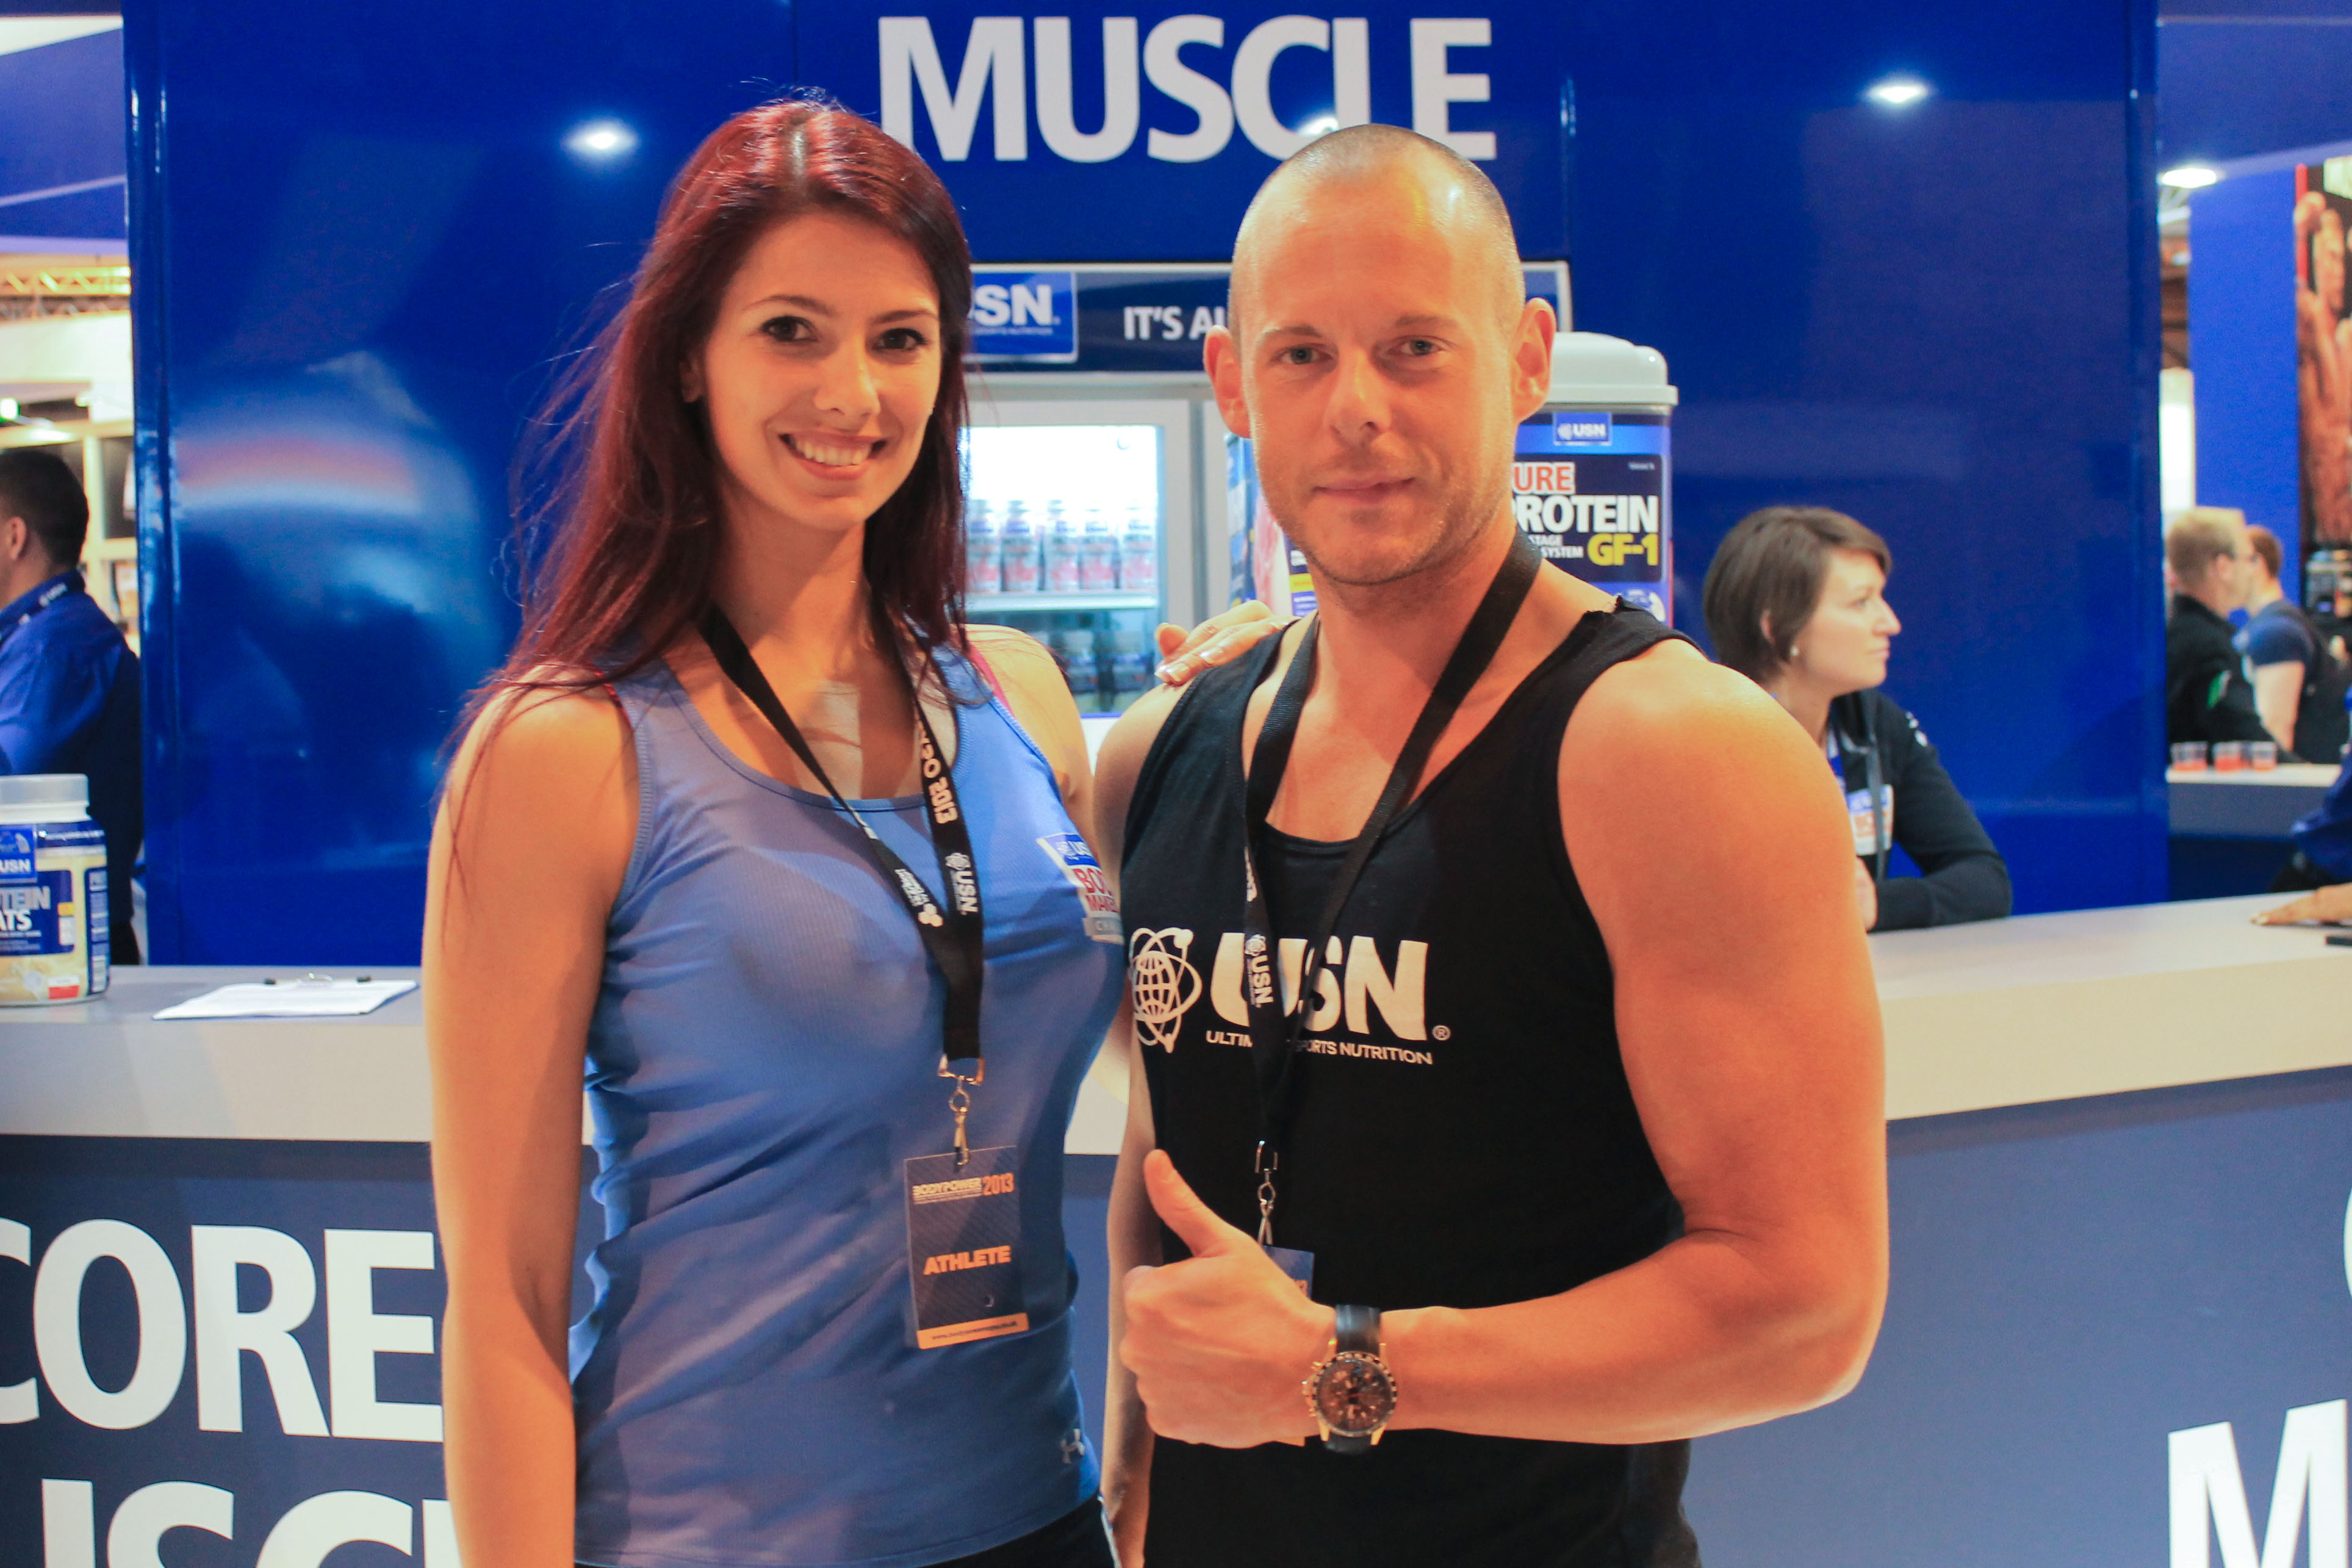 Juliana and Jonny are now USN Ambassadors for a year, part of their fantastic prize for winning the challenge.